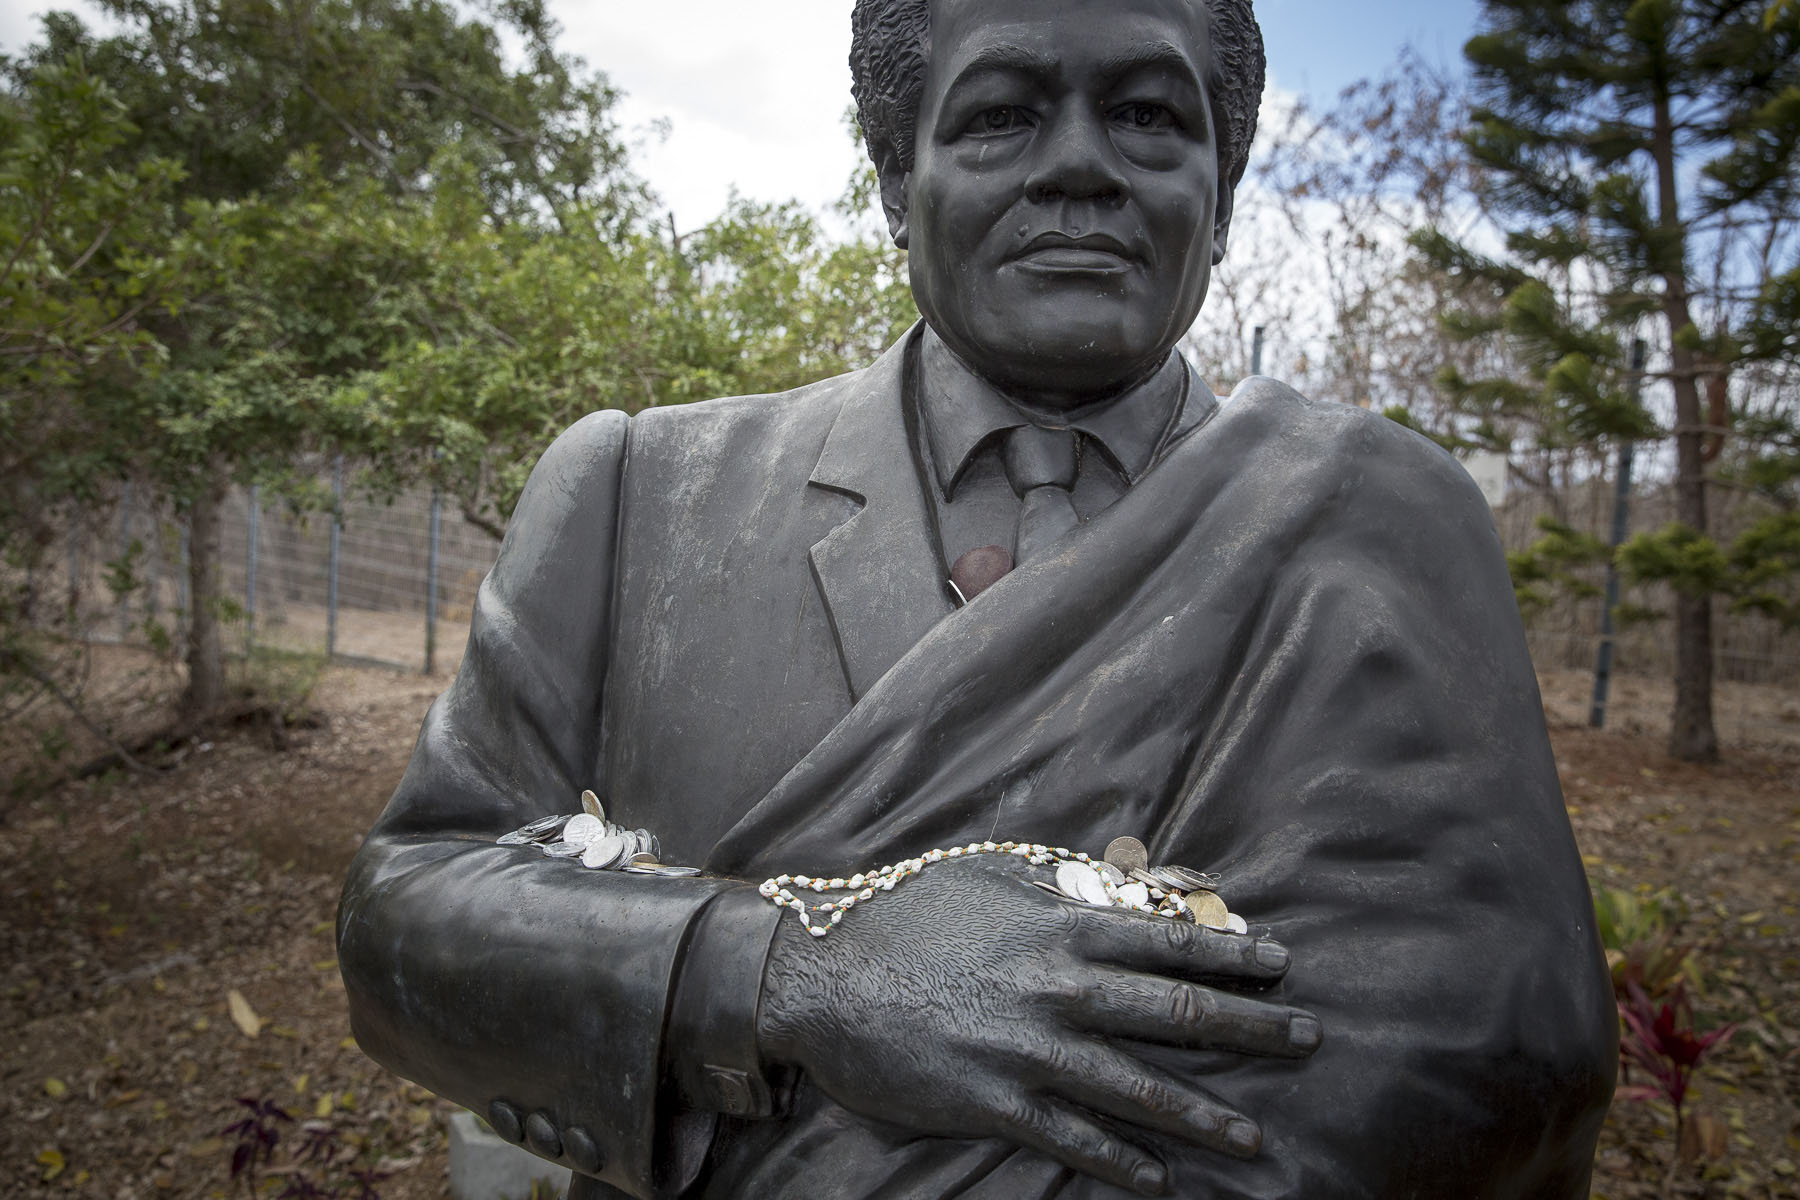 The statue of Jean-Marie Tjibaou at the Tjibaou Cultural Center regularly receives offerings, November 2017